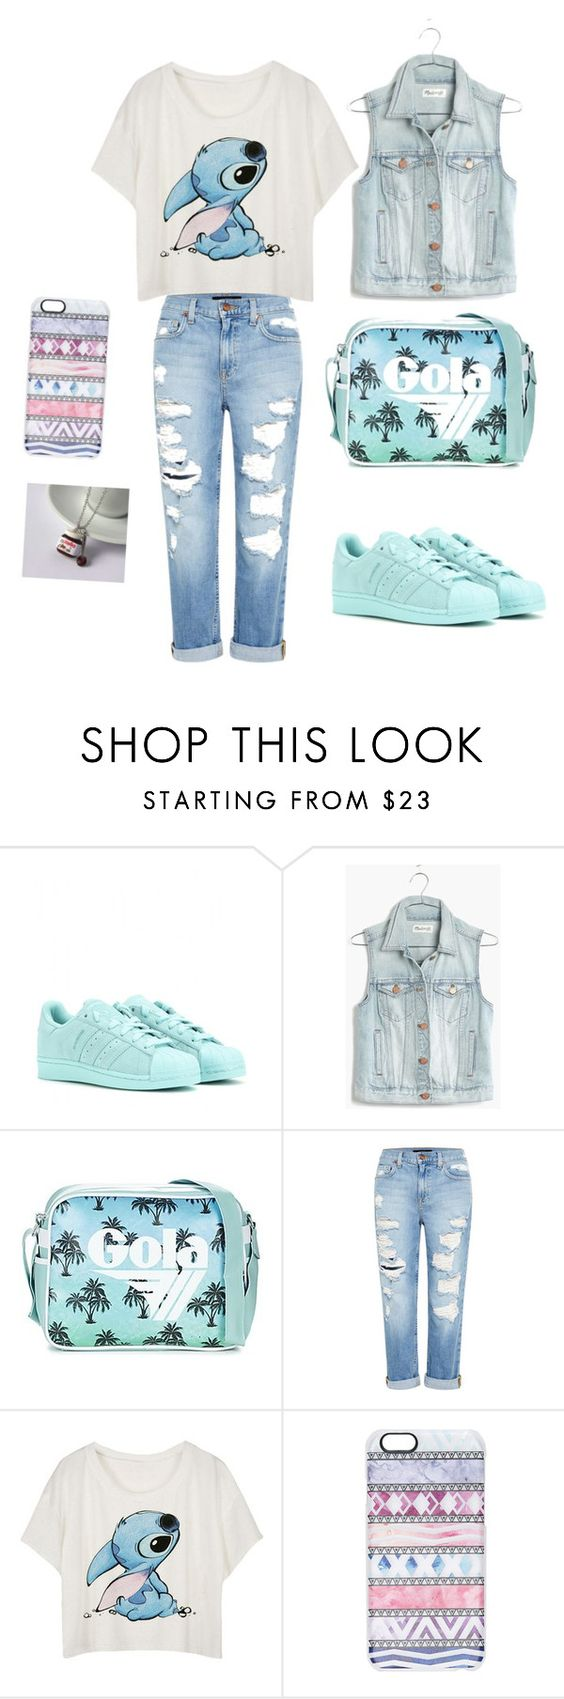 """""""Untitled #29"""" by zulfiyuwa ❤ liked on Polyvore featuring adidas, Madewell, Gola, Genetic Denim and Casetify"""